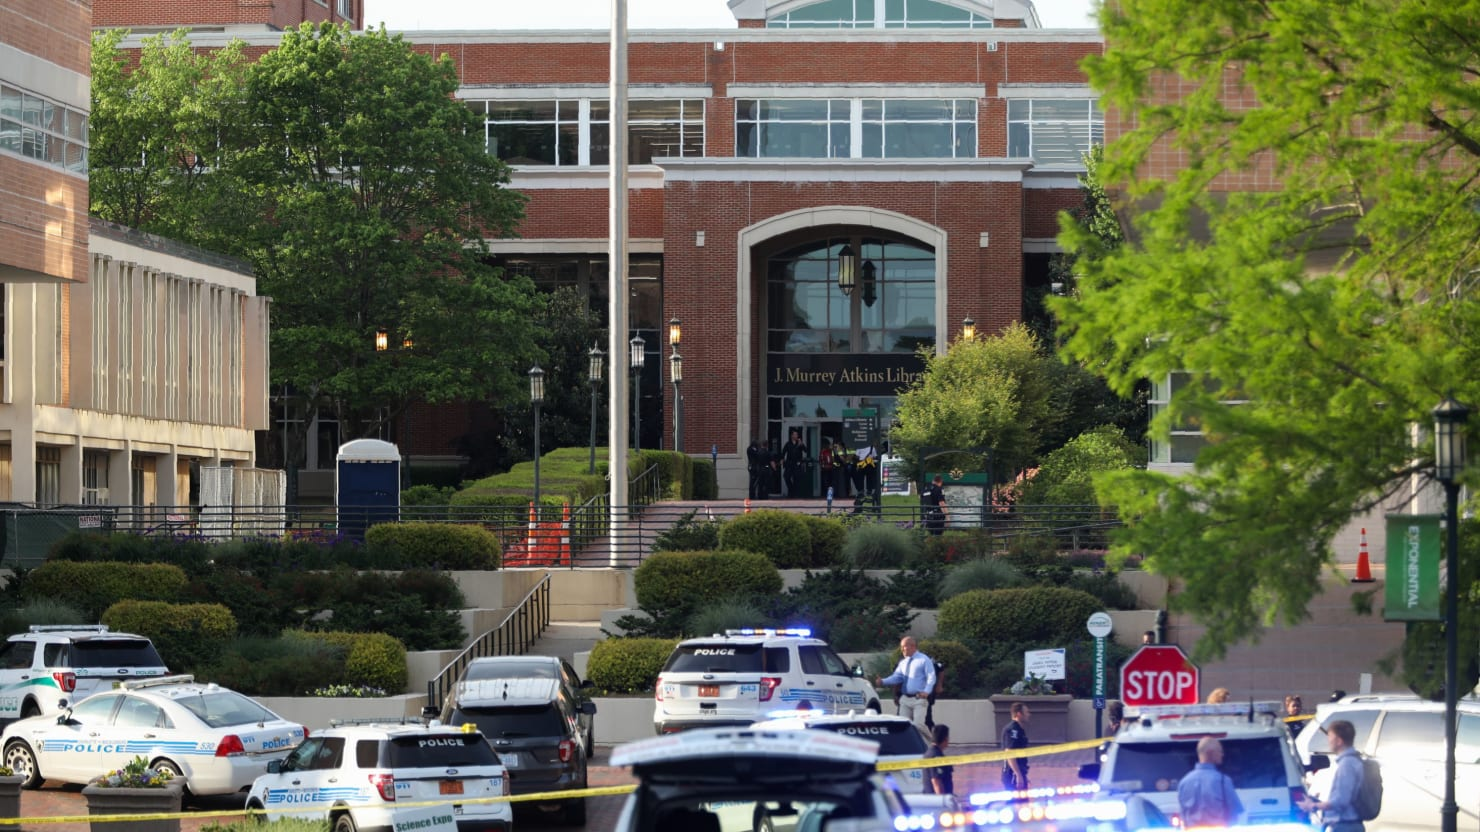 Two Dead in Shooting at University of North Carolina Charlotte